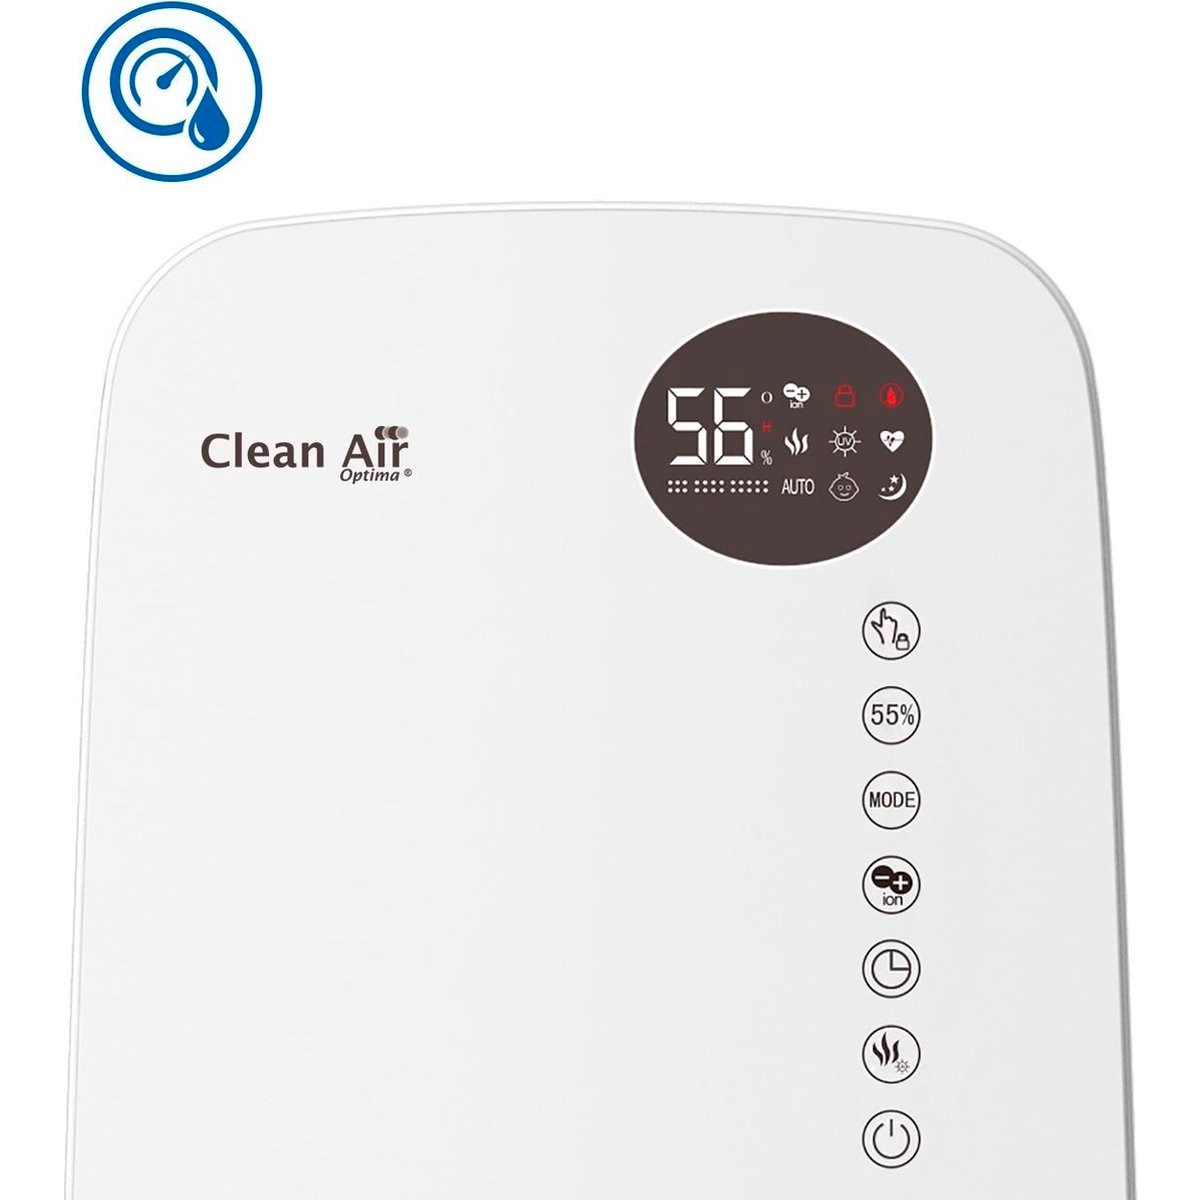 humidificador de aire Clean Air Optim CA-606 panel de accionamiento